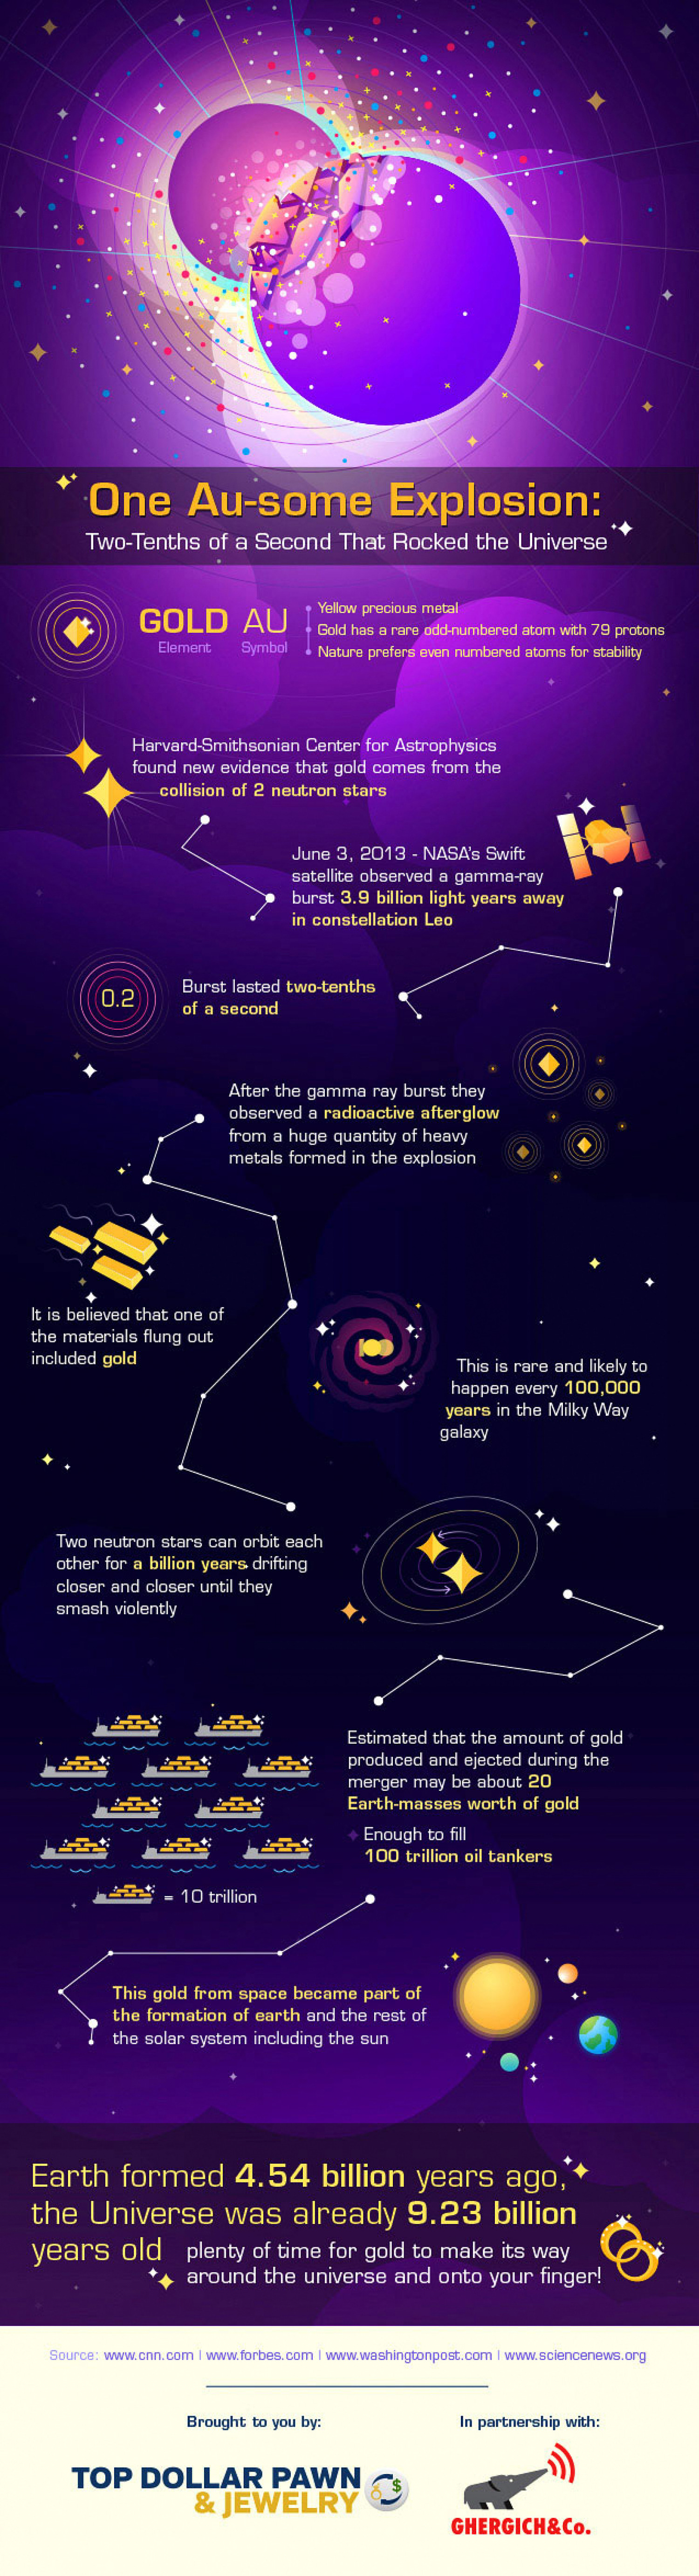 One Au-some Explosion: Two-Tenths of a Second that Rocked the Universe Infographic